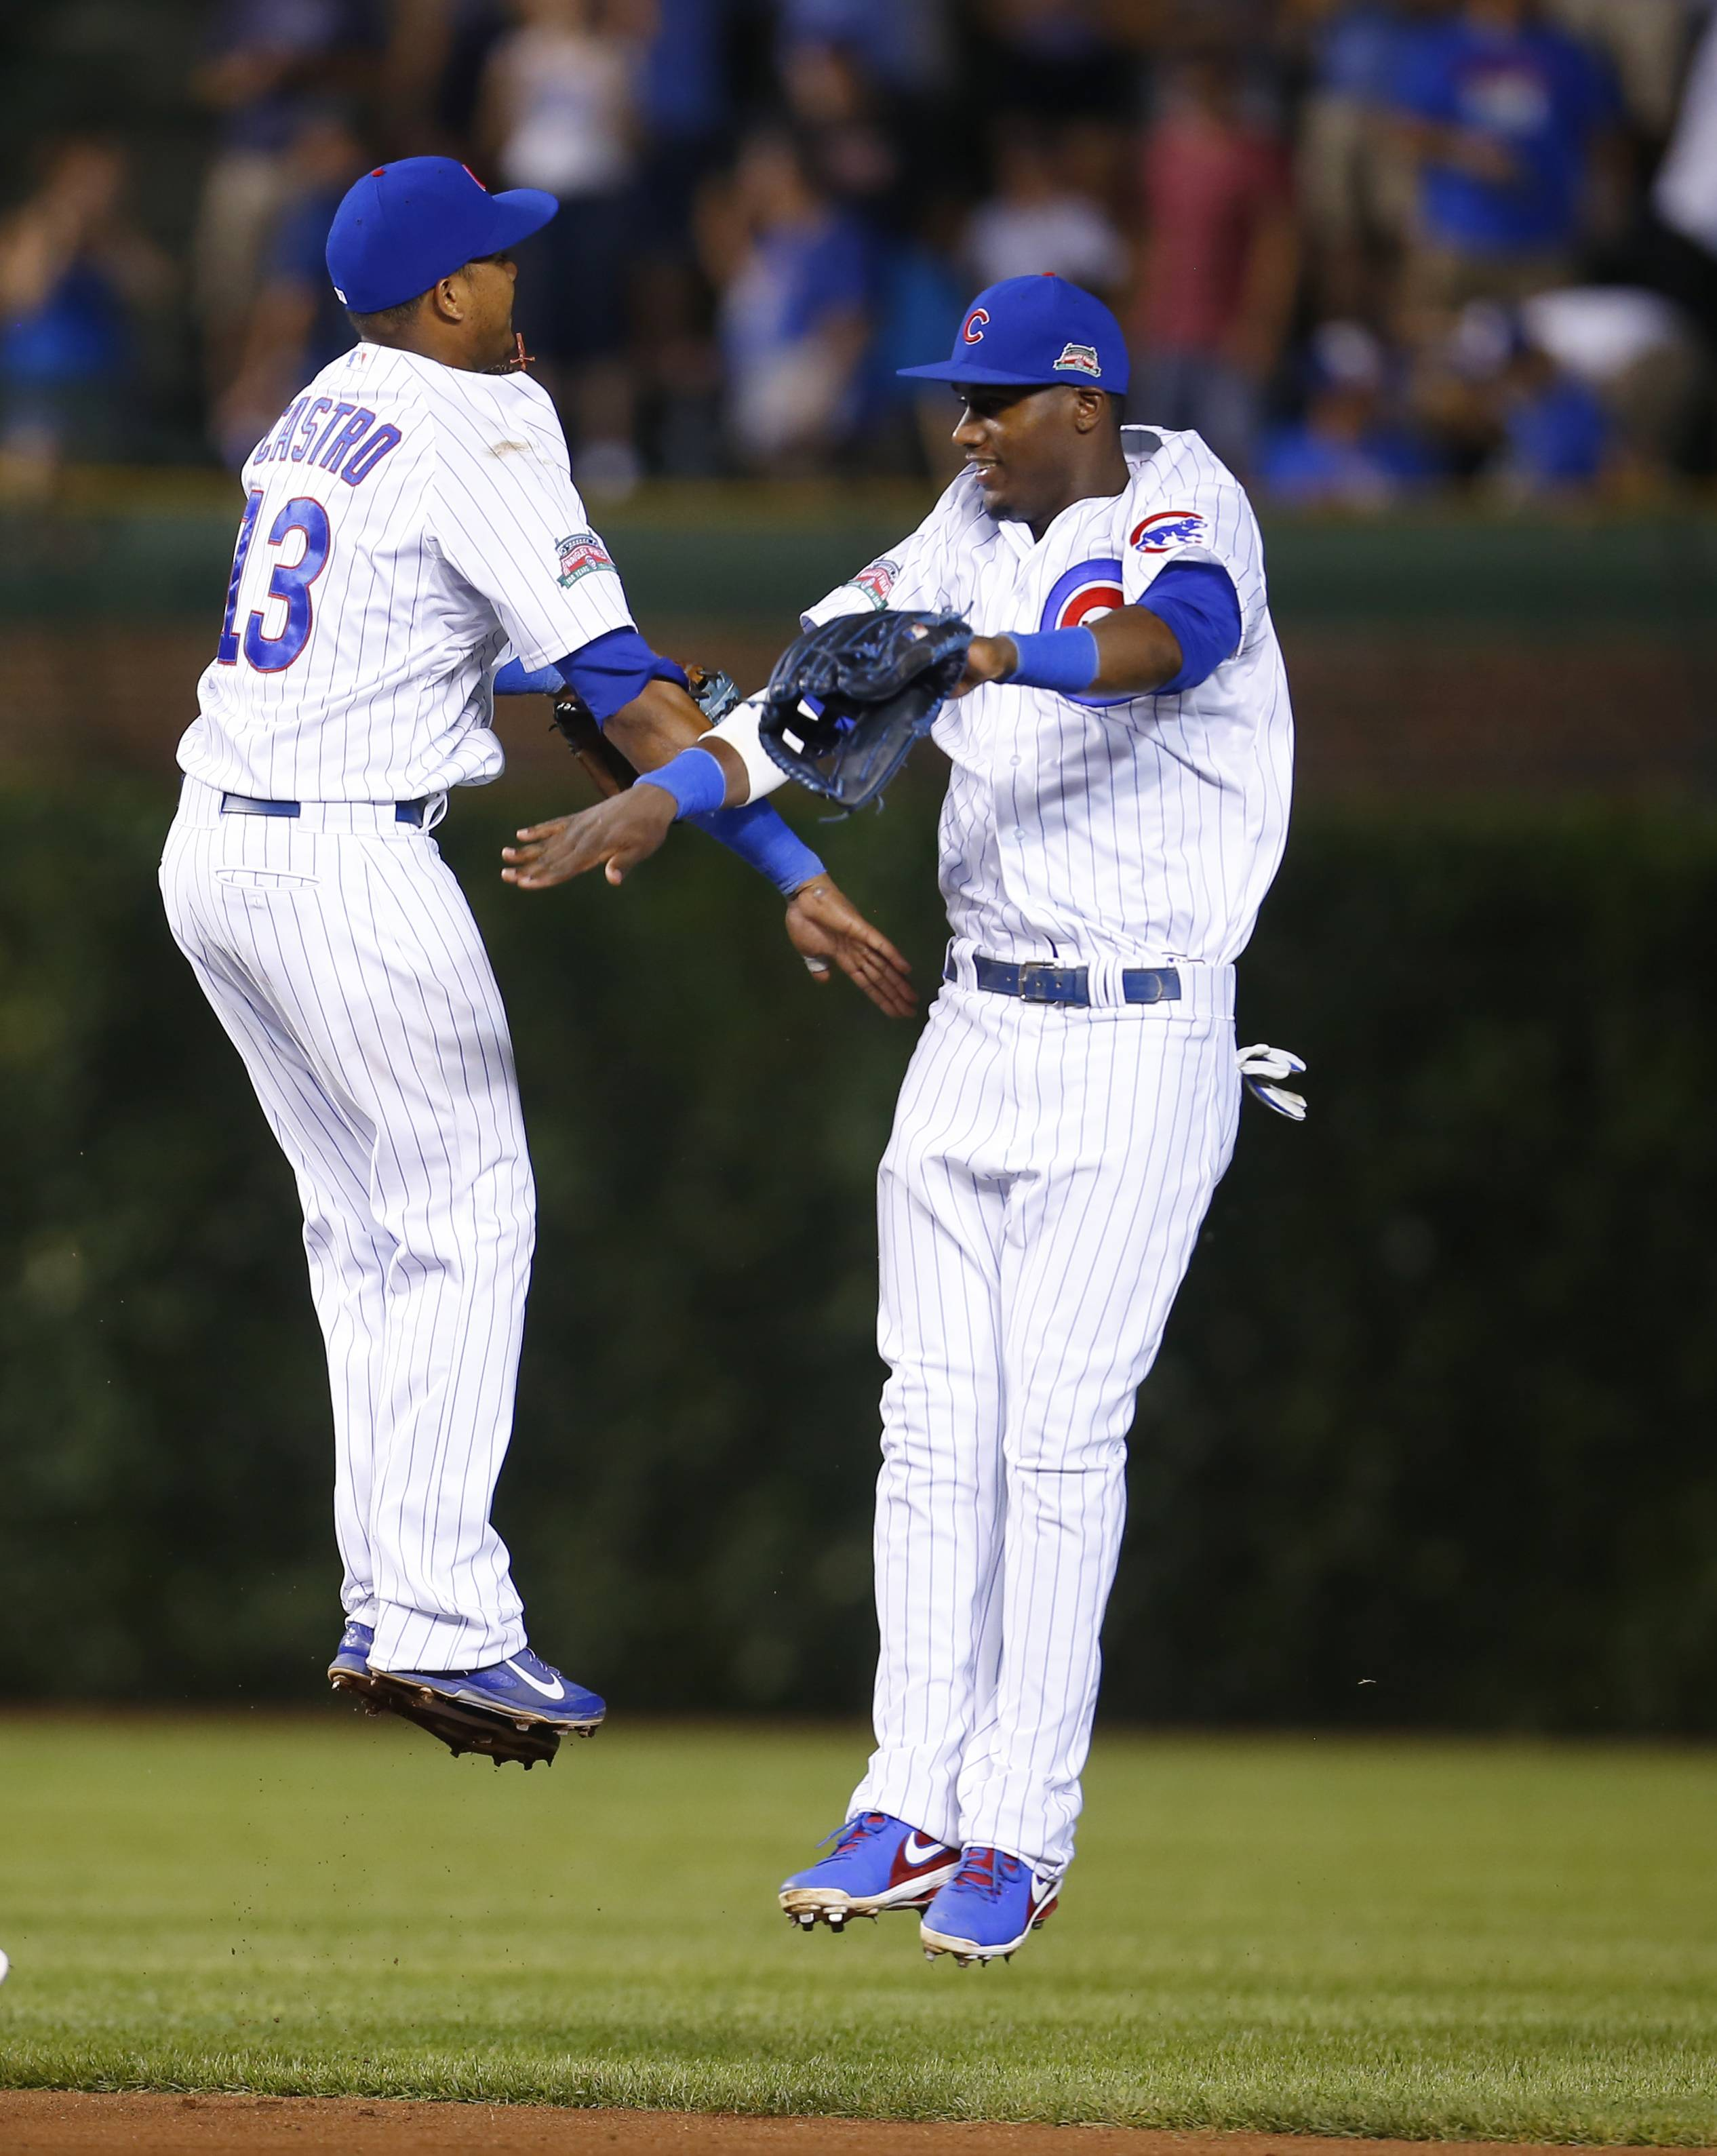 Cubs shortstop Starlin Castro (13) and left fielder Junior Lake celebrates after their baseball game against the San Diego Padres in Chicago, Tuesday, July 22, 2014. The Cubs won the game 6-0.